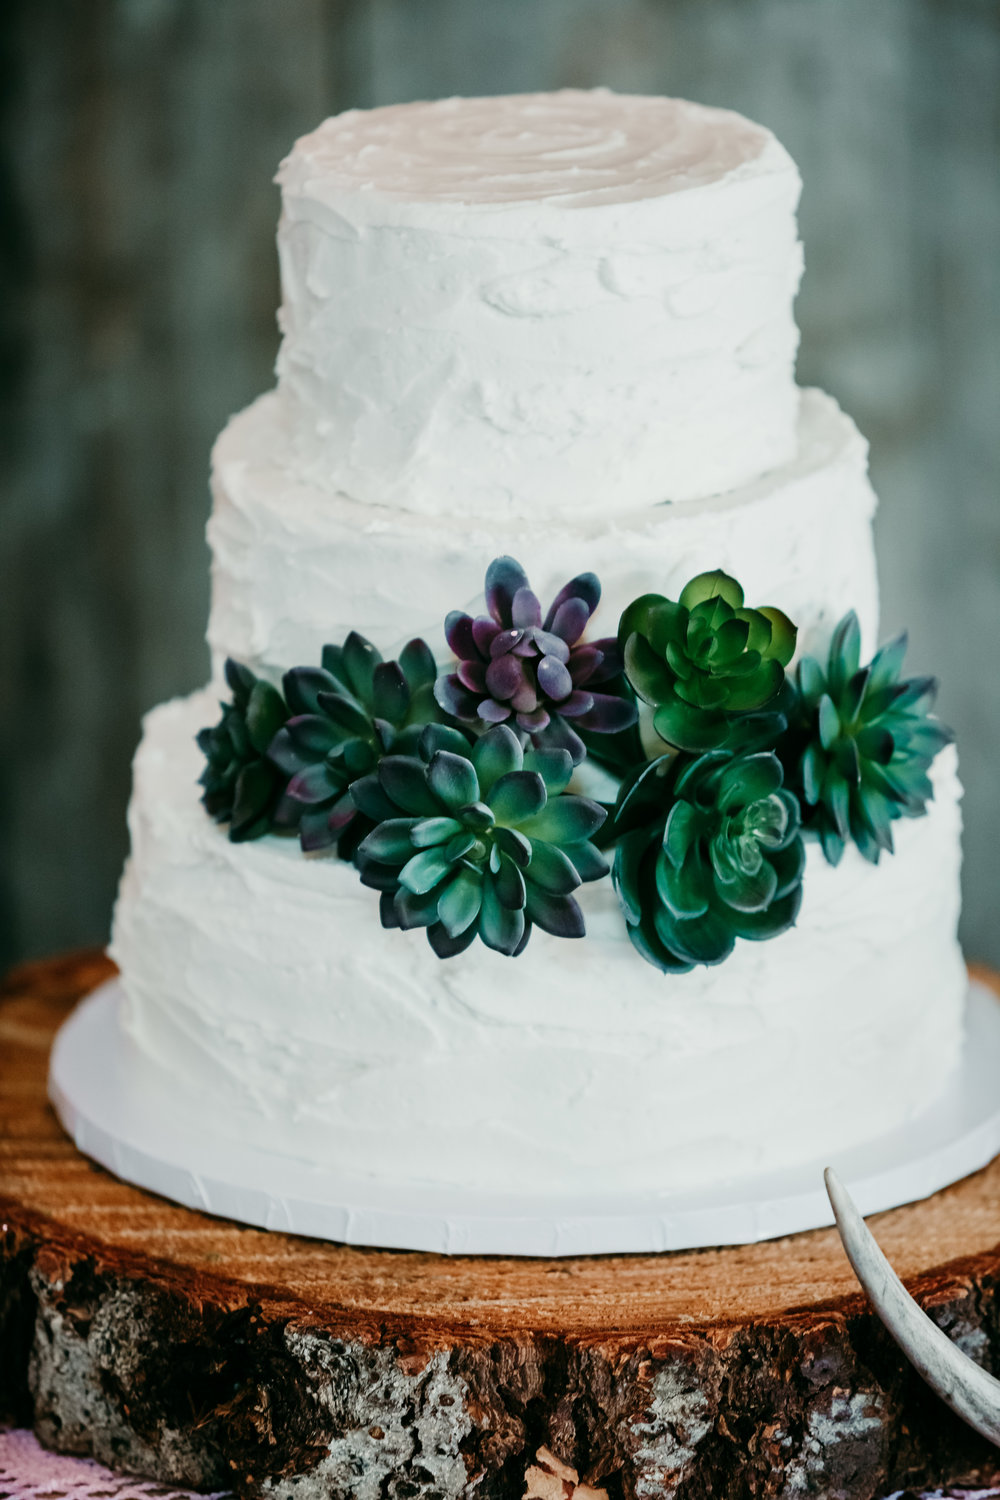 corvallis-oregon-wedding-photographer_Star-Attractions-Hummer-Cake.jpg